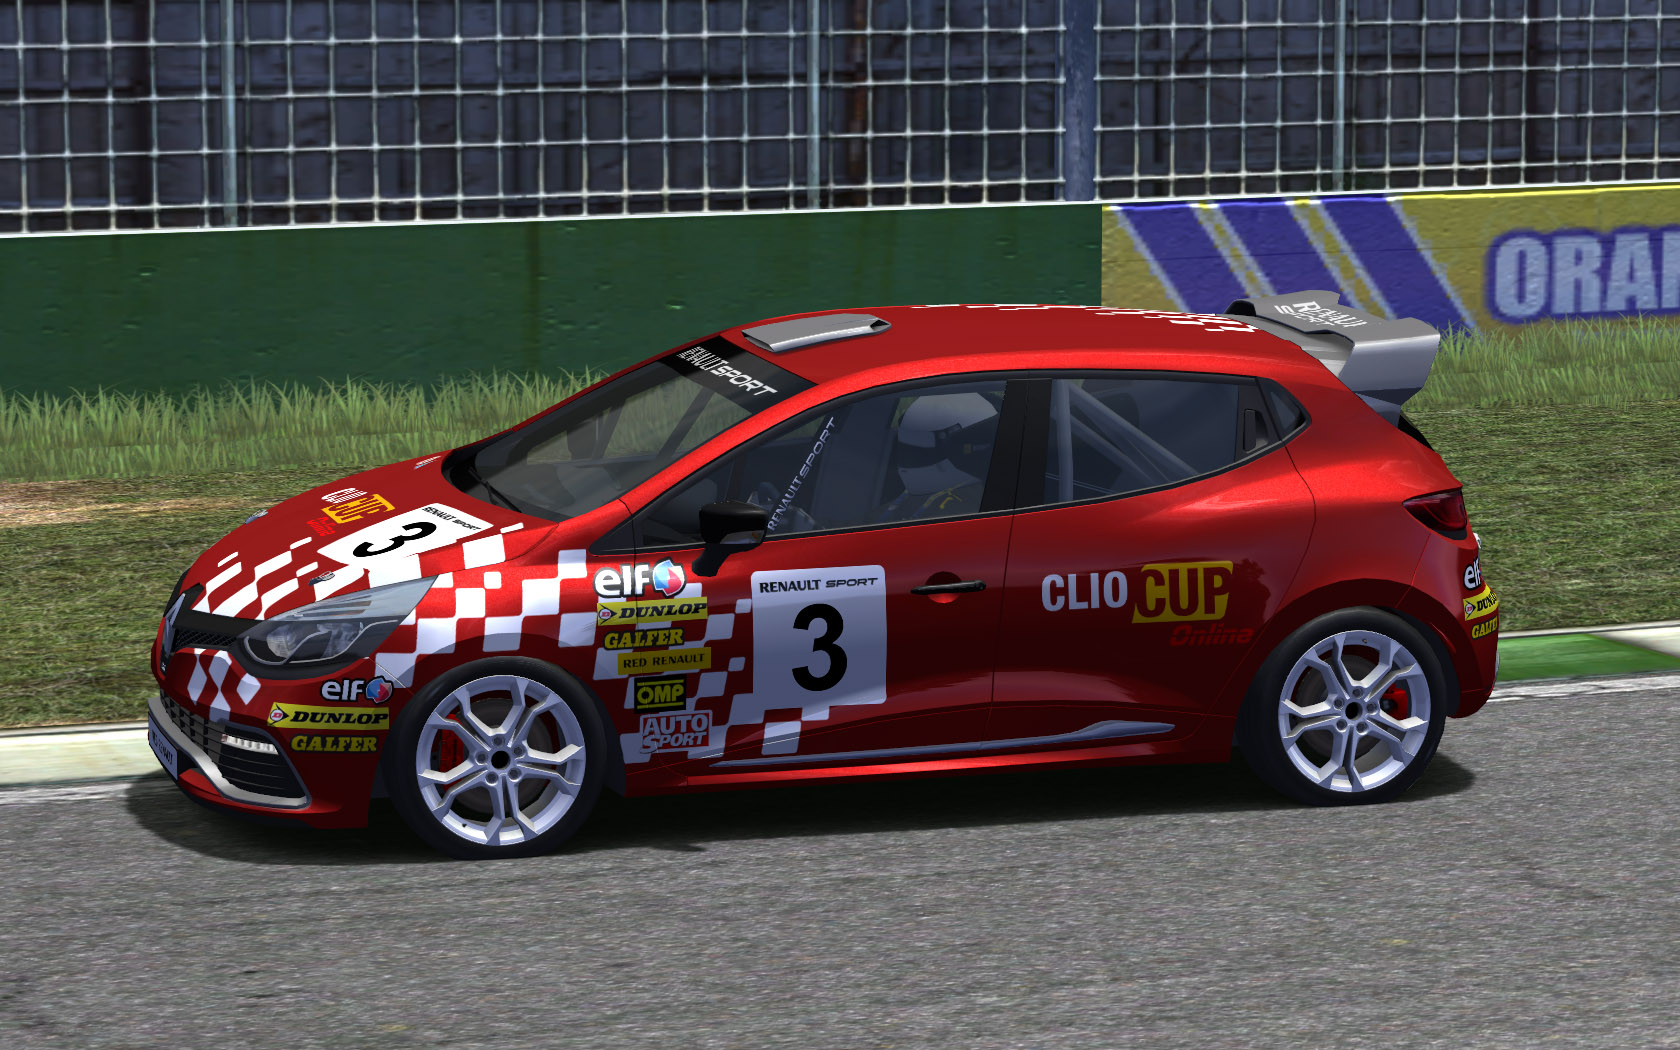 Clio Cup 2013 for rFactor - Presentation Video -